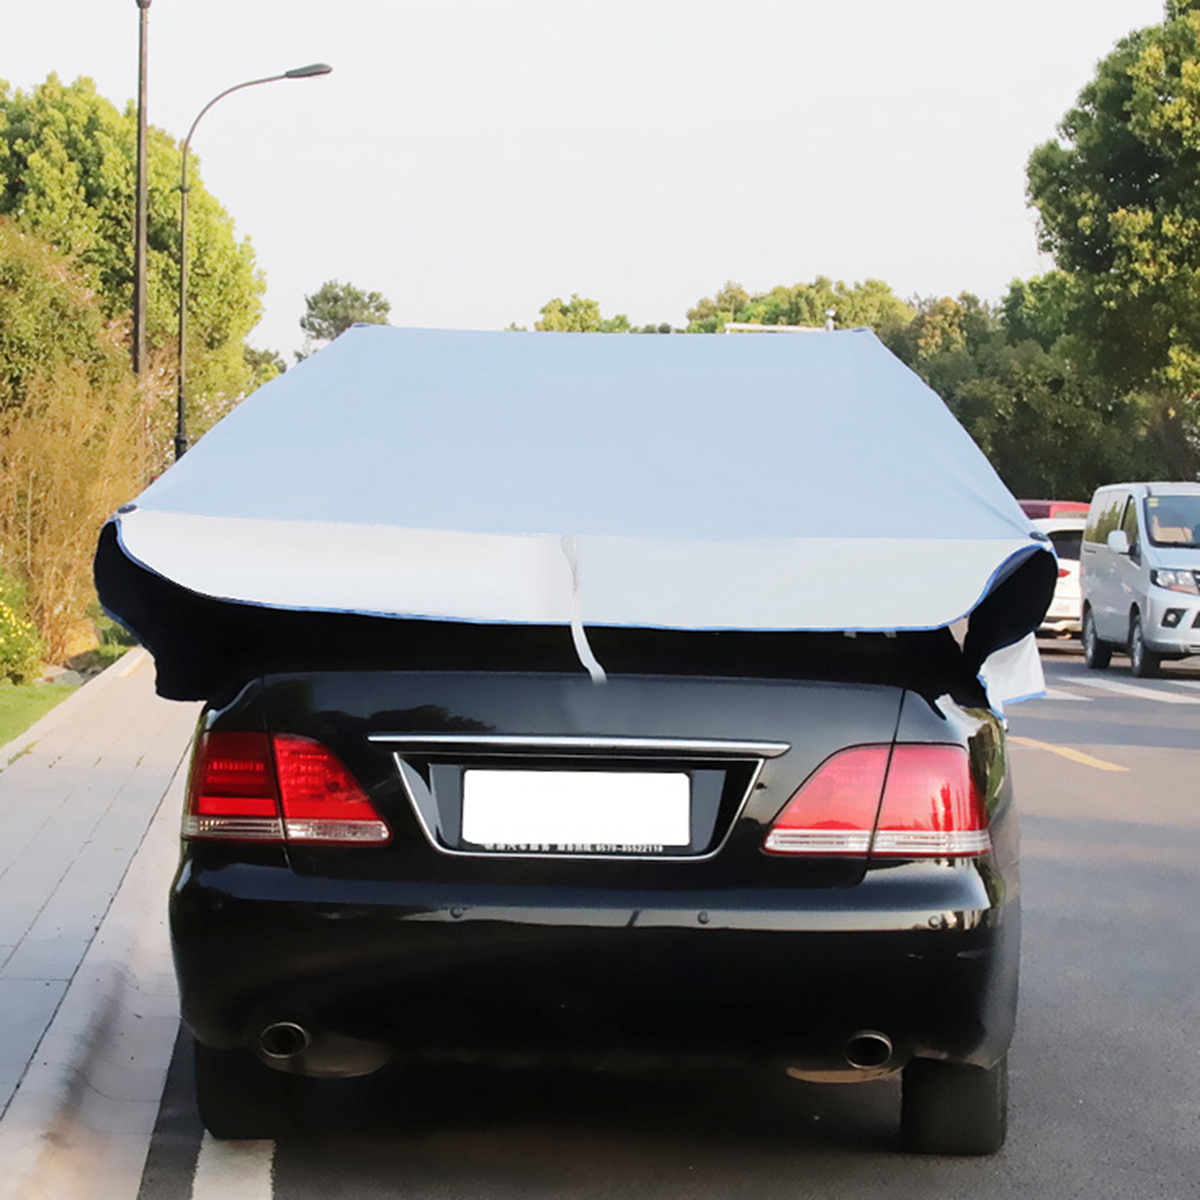 Automatic Car Roof Cover Umbrella Sunshade Tent UV Protection or Triangular Support